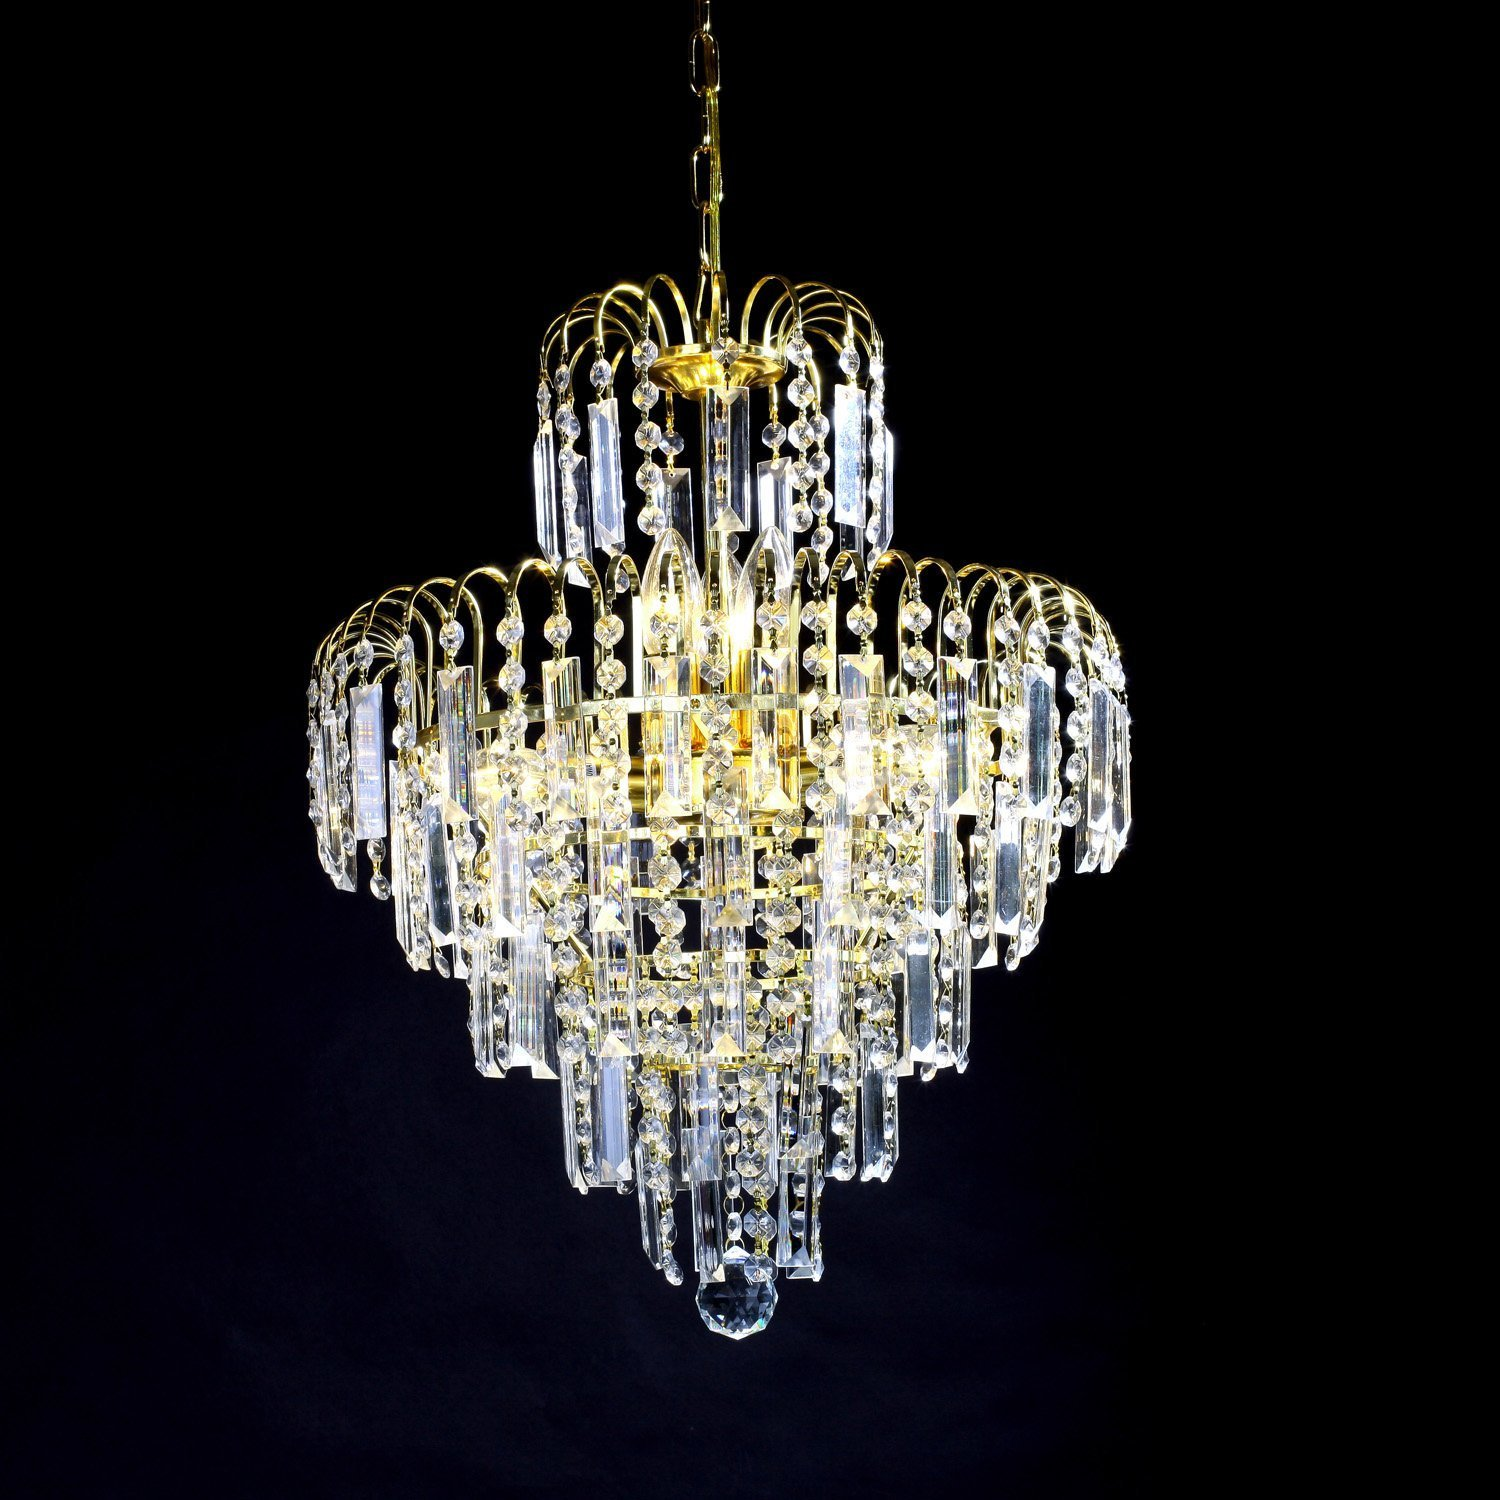 Luxury 6 Lights Chandelier In Crown Shape Crystal Home Ceiling Light Fixture Pendant Chandeliers Lighting For Dining Room Bedroom Living